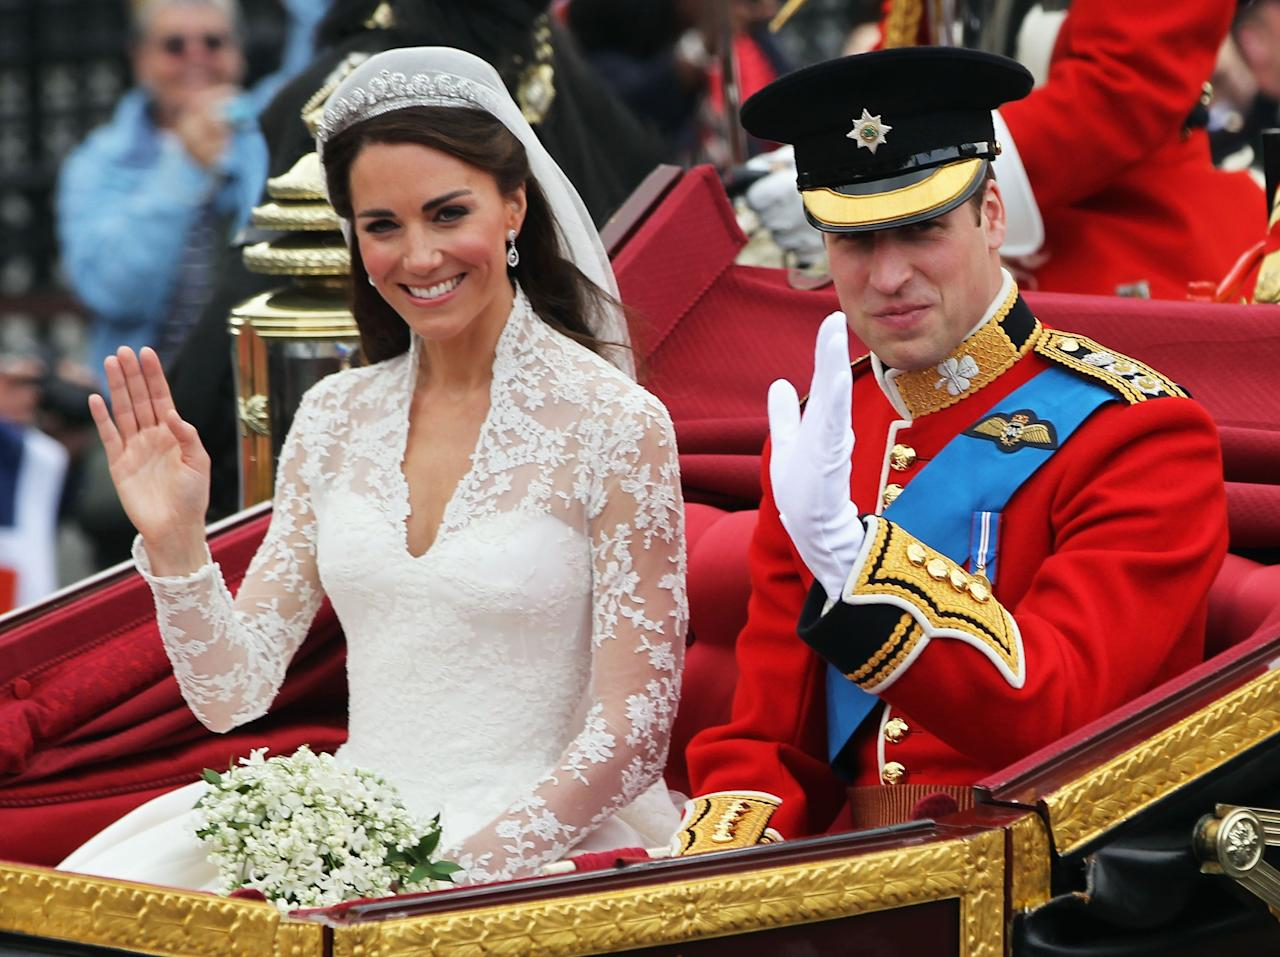 <p>Royal weddings are carefully choreographed affairs that take months of planning by teams in the hundreds, but even the most epically scheduled wedding can go wrong. </p>